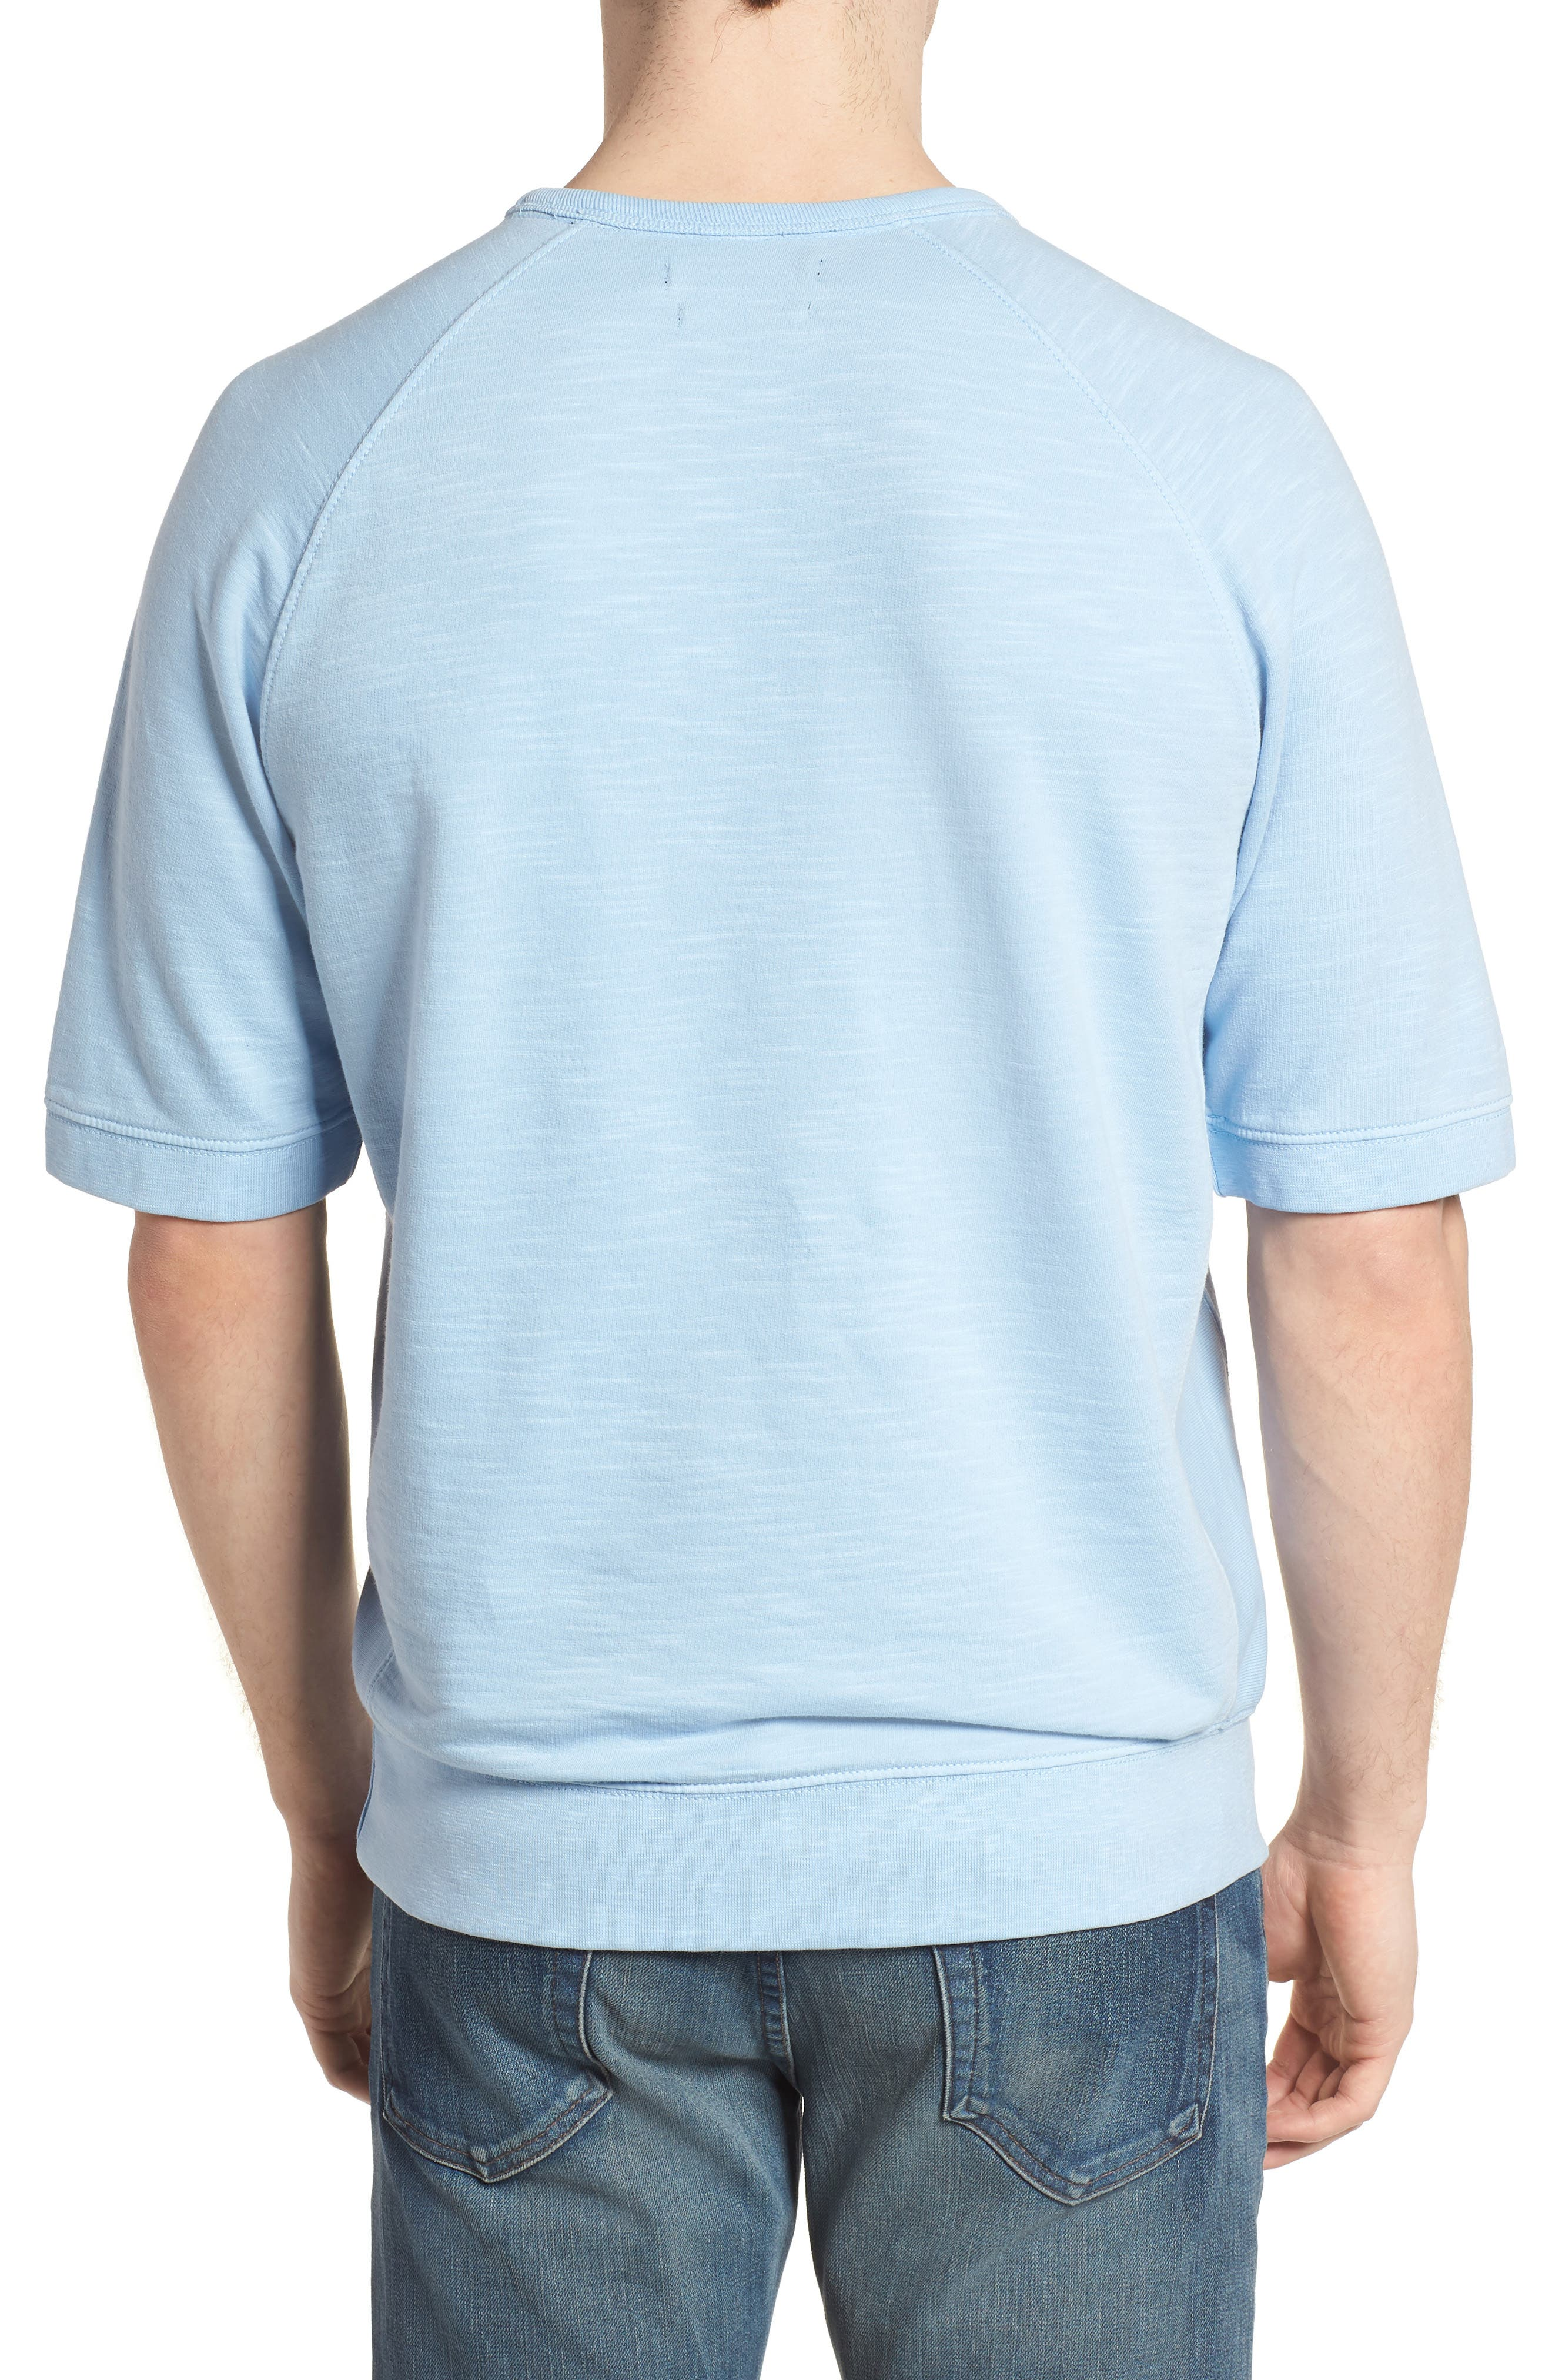 Workout Relaxed Fit Crewneck T-Shirt,                             Alternate thumbnail 2, color,                             Sky Blue